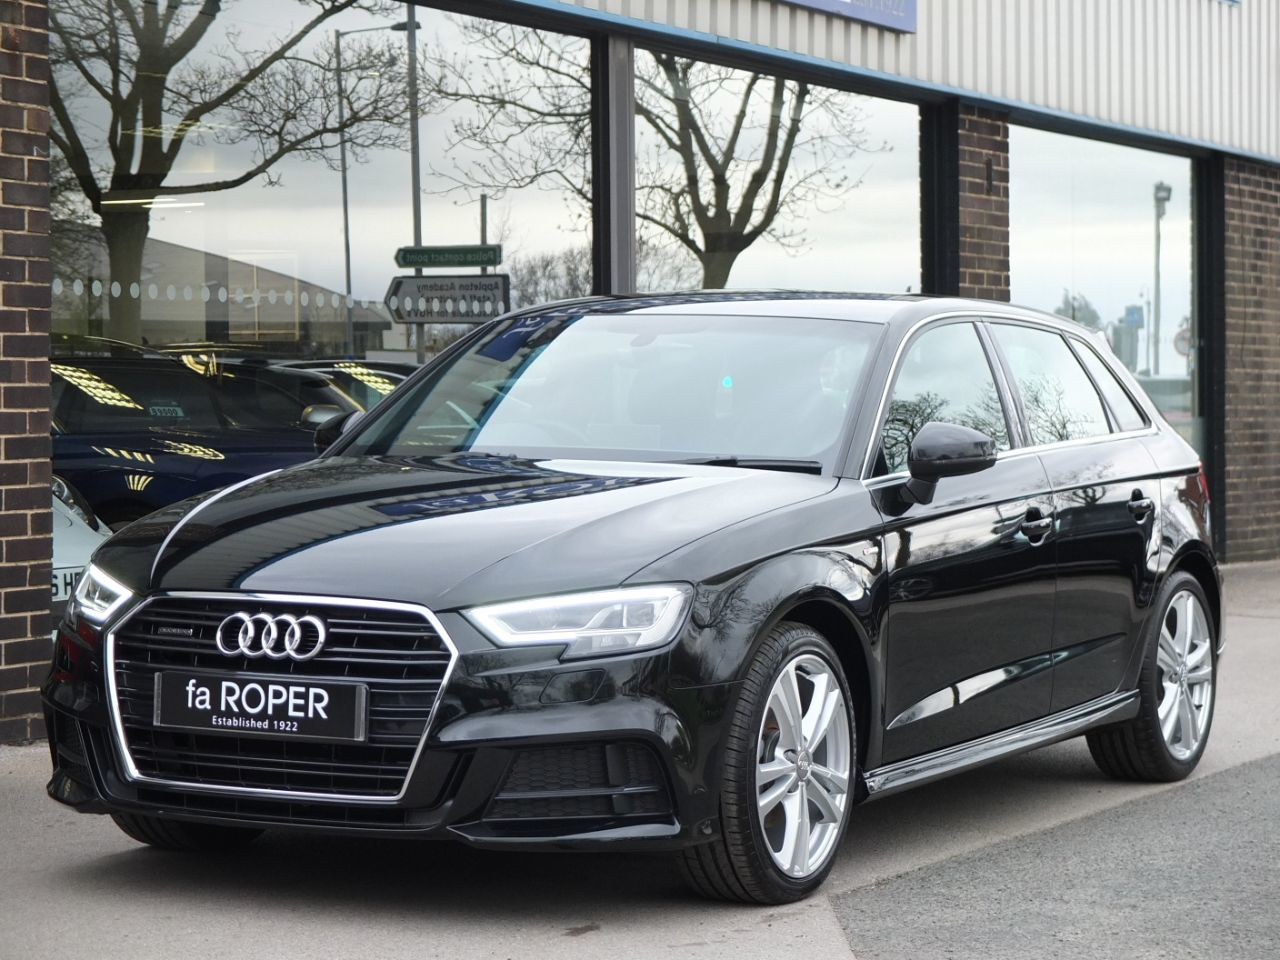 Audi A3 Sportback 2.0 TDI quattro S Line 5 door 150ps Hatchback Diesel Mythos Black MetallicAudi A3 Sportback 2.0 TDI quattro S Line 5 door 150ps Hatchback Diesel Mythos Black Metallic at fa Roper Ltd Bradford